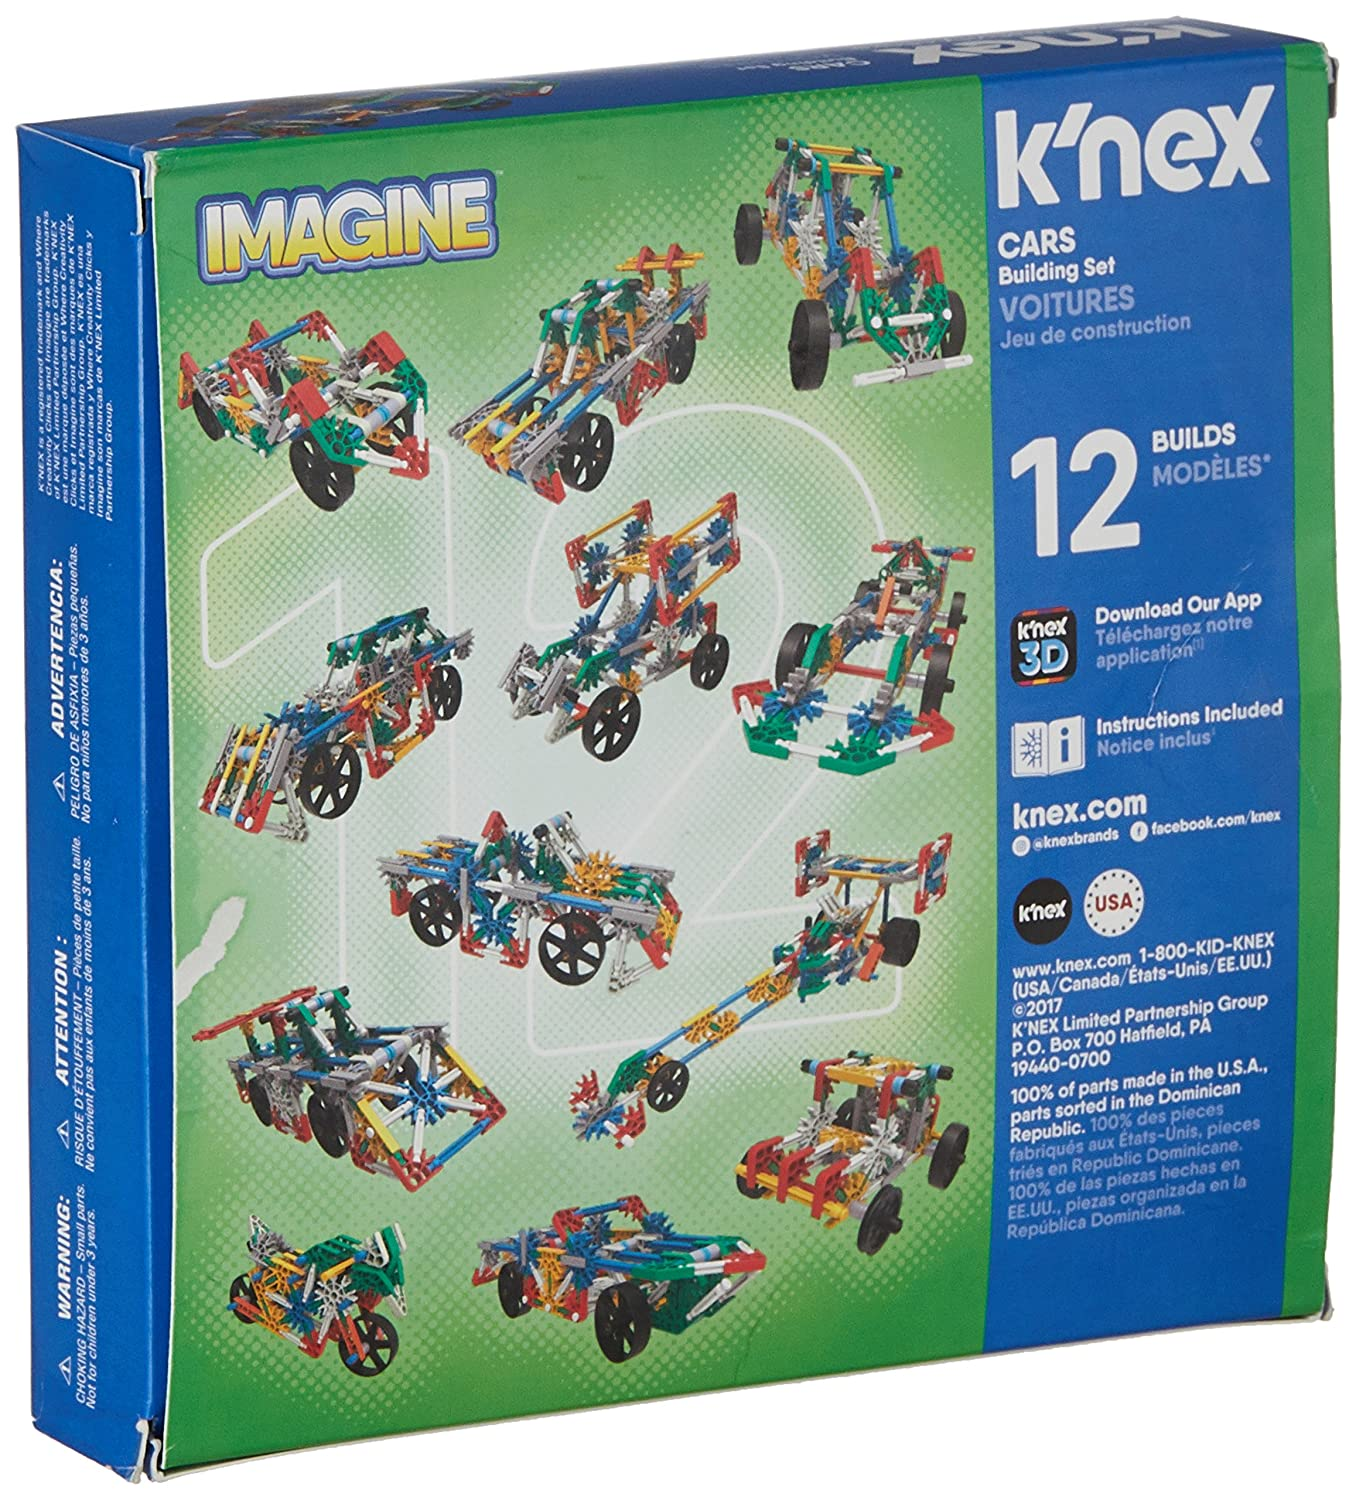 90f55e0e903 K'Nex 25525 Imagine 12 Model Cars Building Set, 186 Pieces, Ages 7+  Engineering Education Toy: K'Nex: Amazon.co.uk: Toys & Games